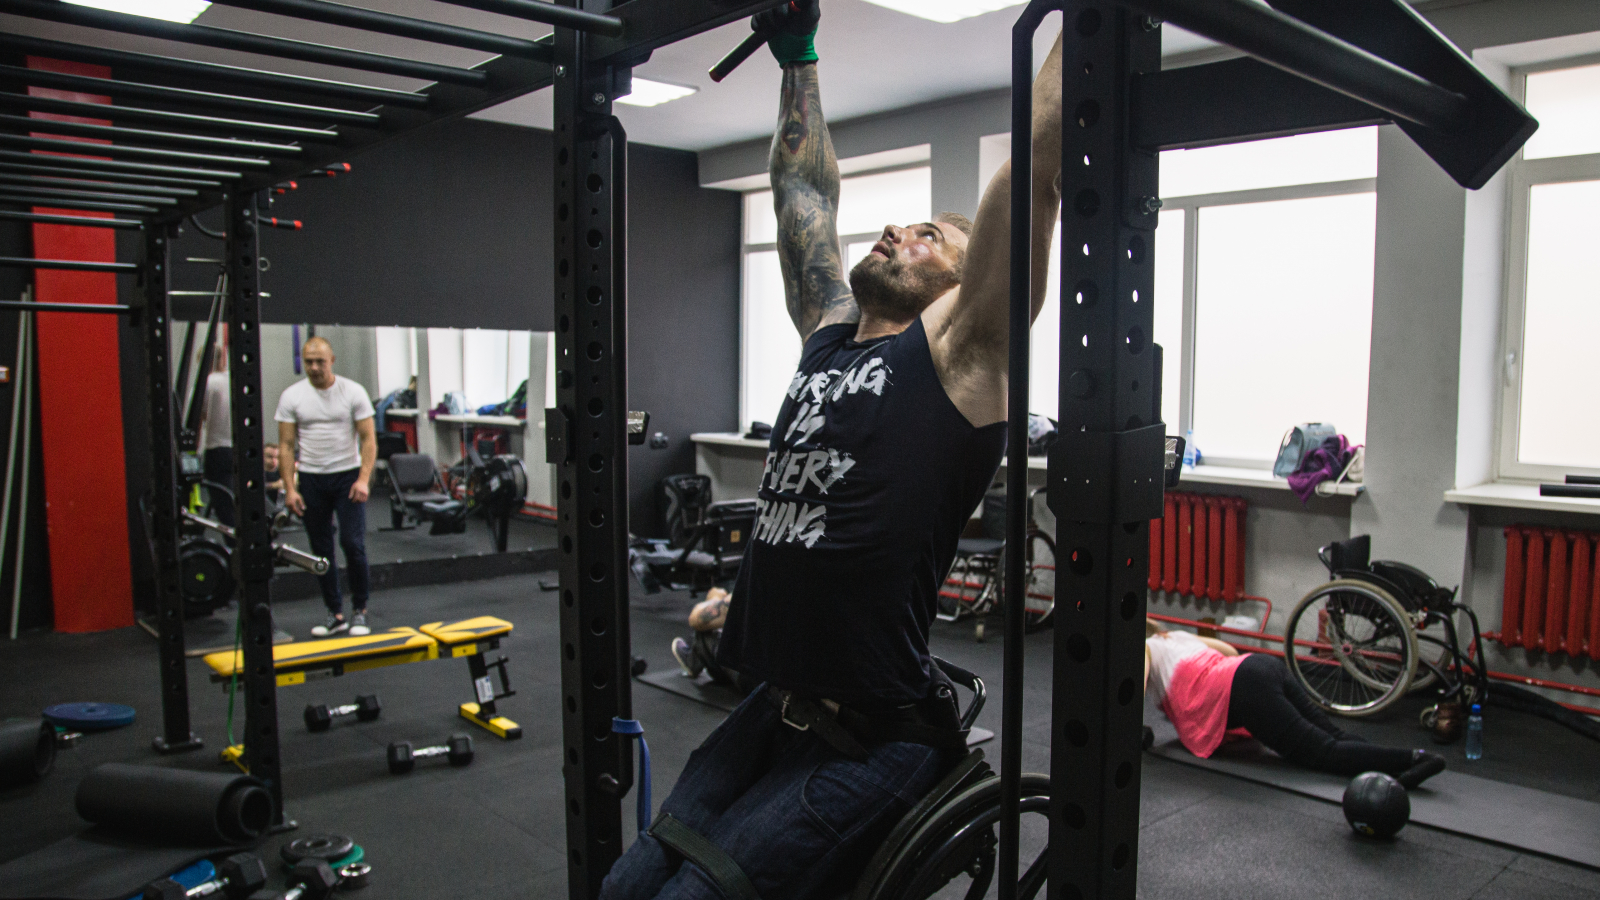 Viktor Zakharyev says that CrossFit is gaining popularity in Lida